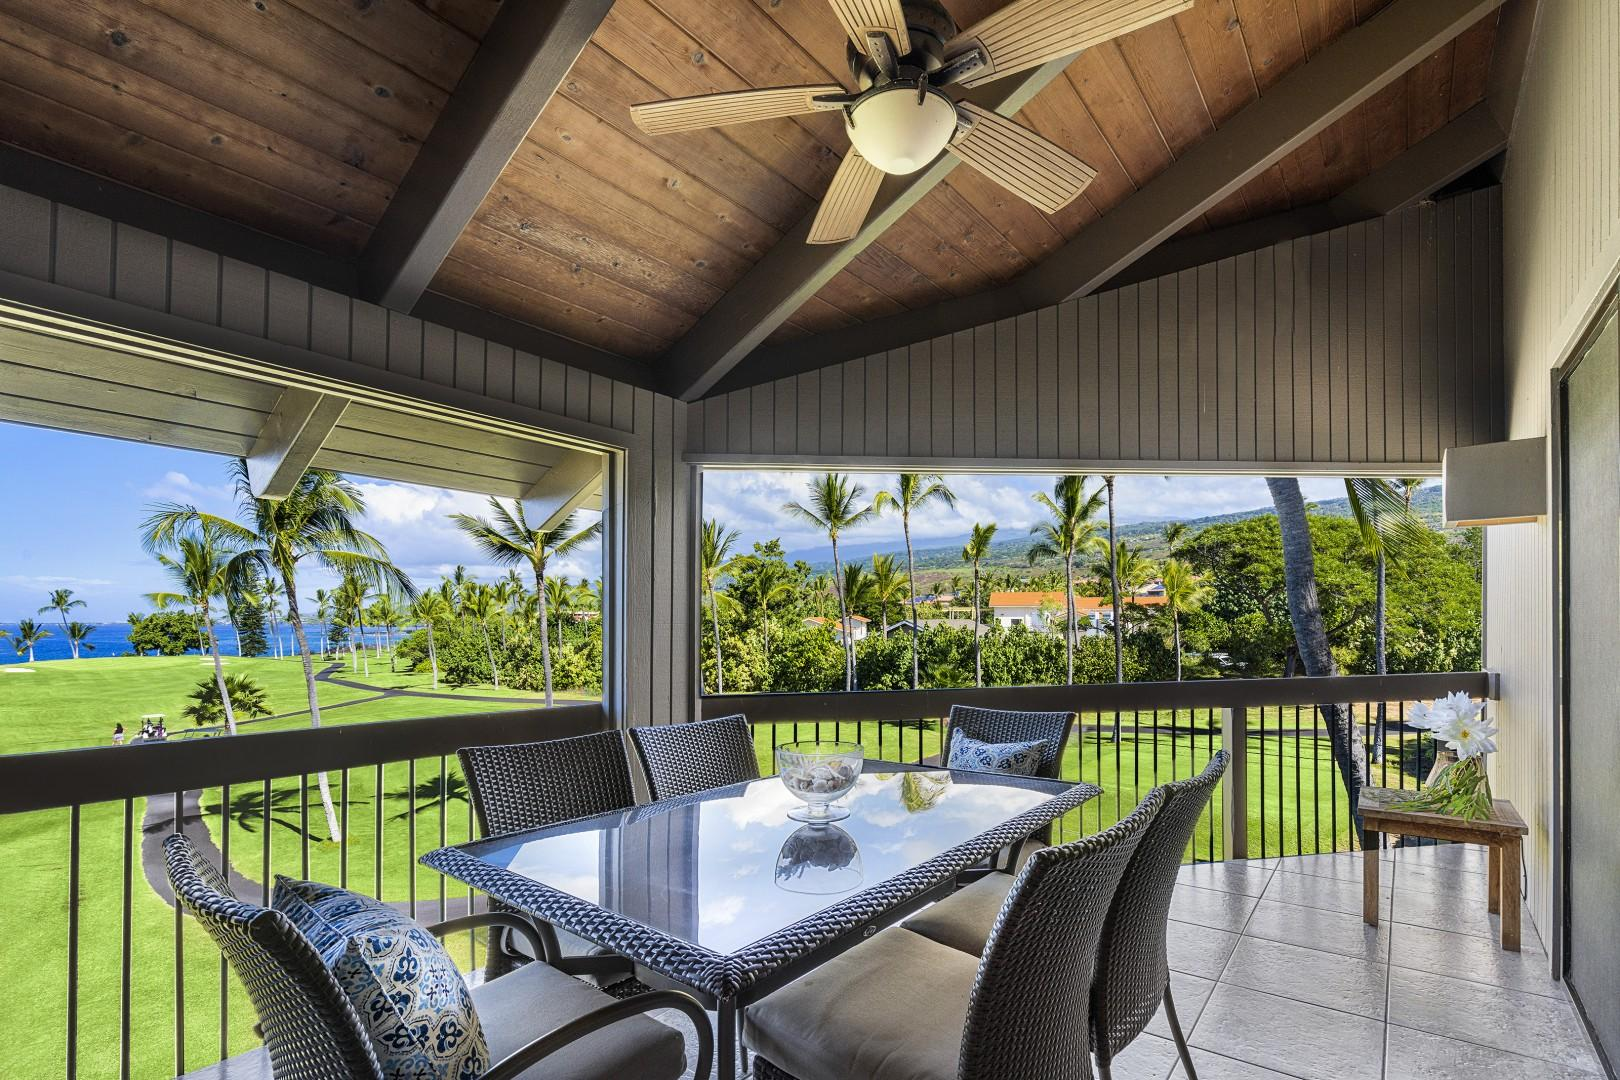 Dining for 6 guests on the spacious Lanai!